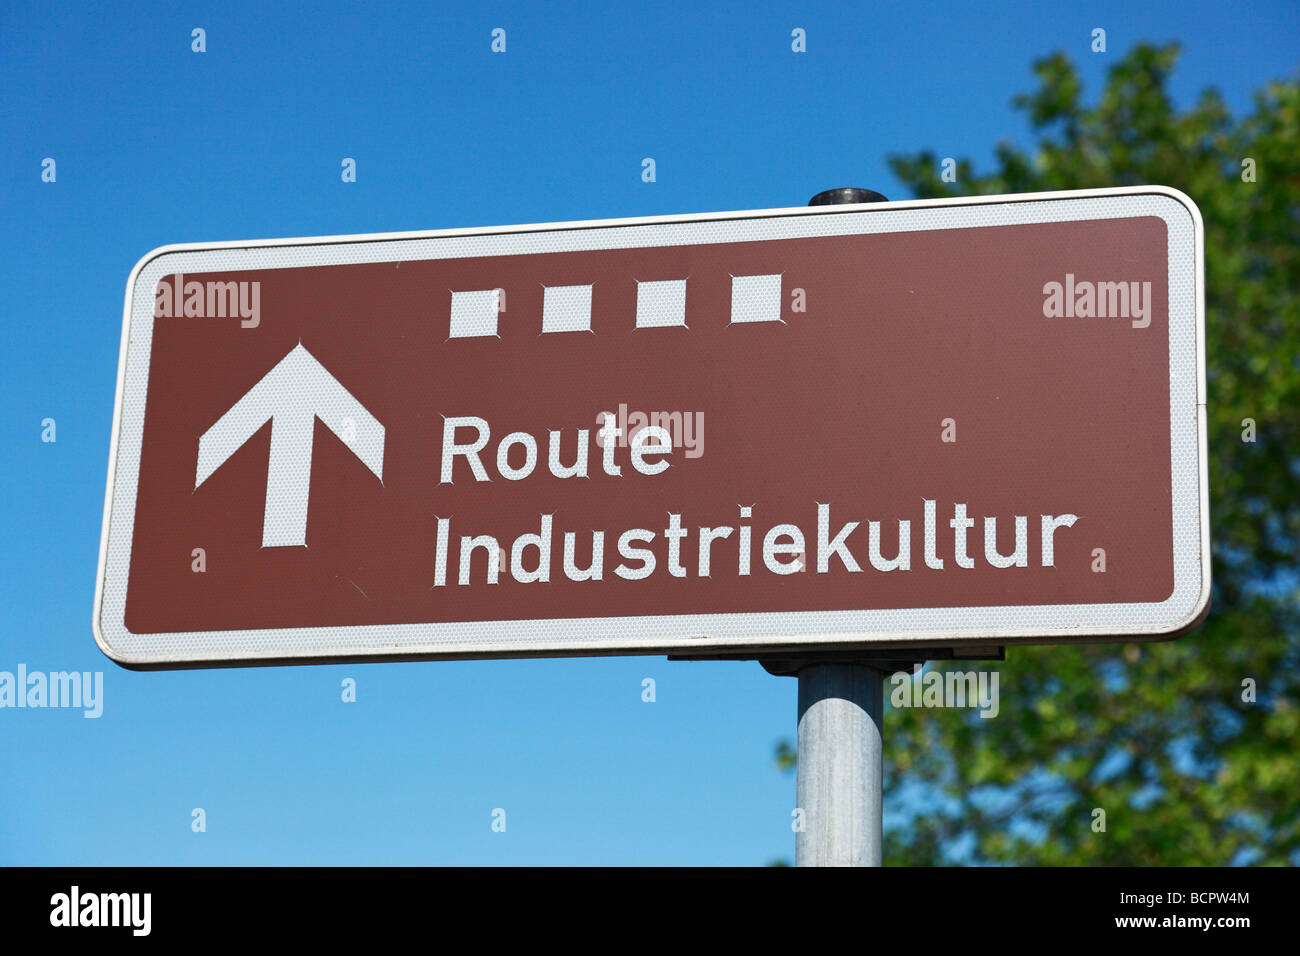 guide to the Route of Industrial Heritage, hard coal mining in the Ruhr region, industrial history, IBA project - Stock Image